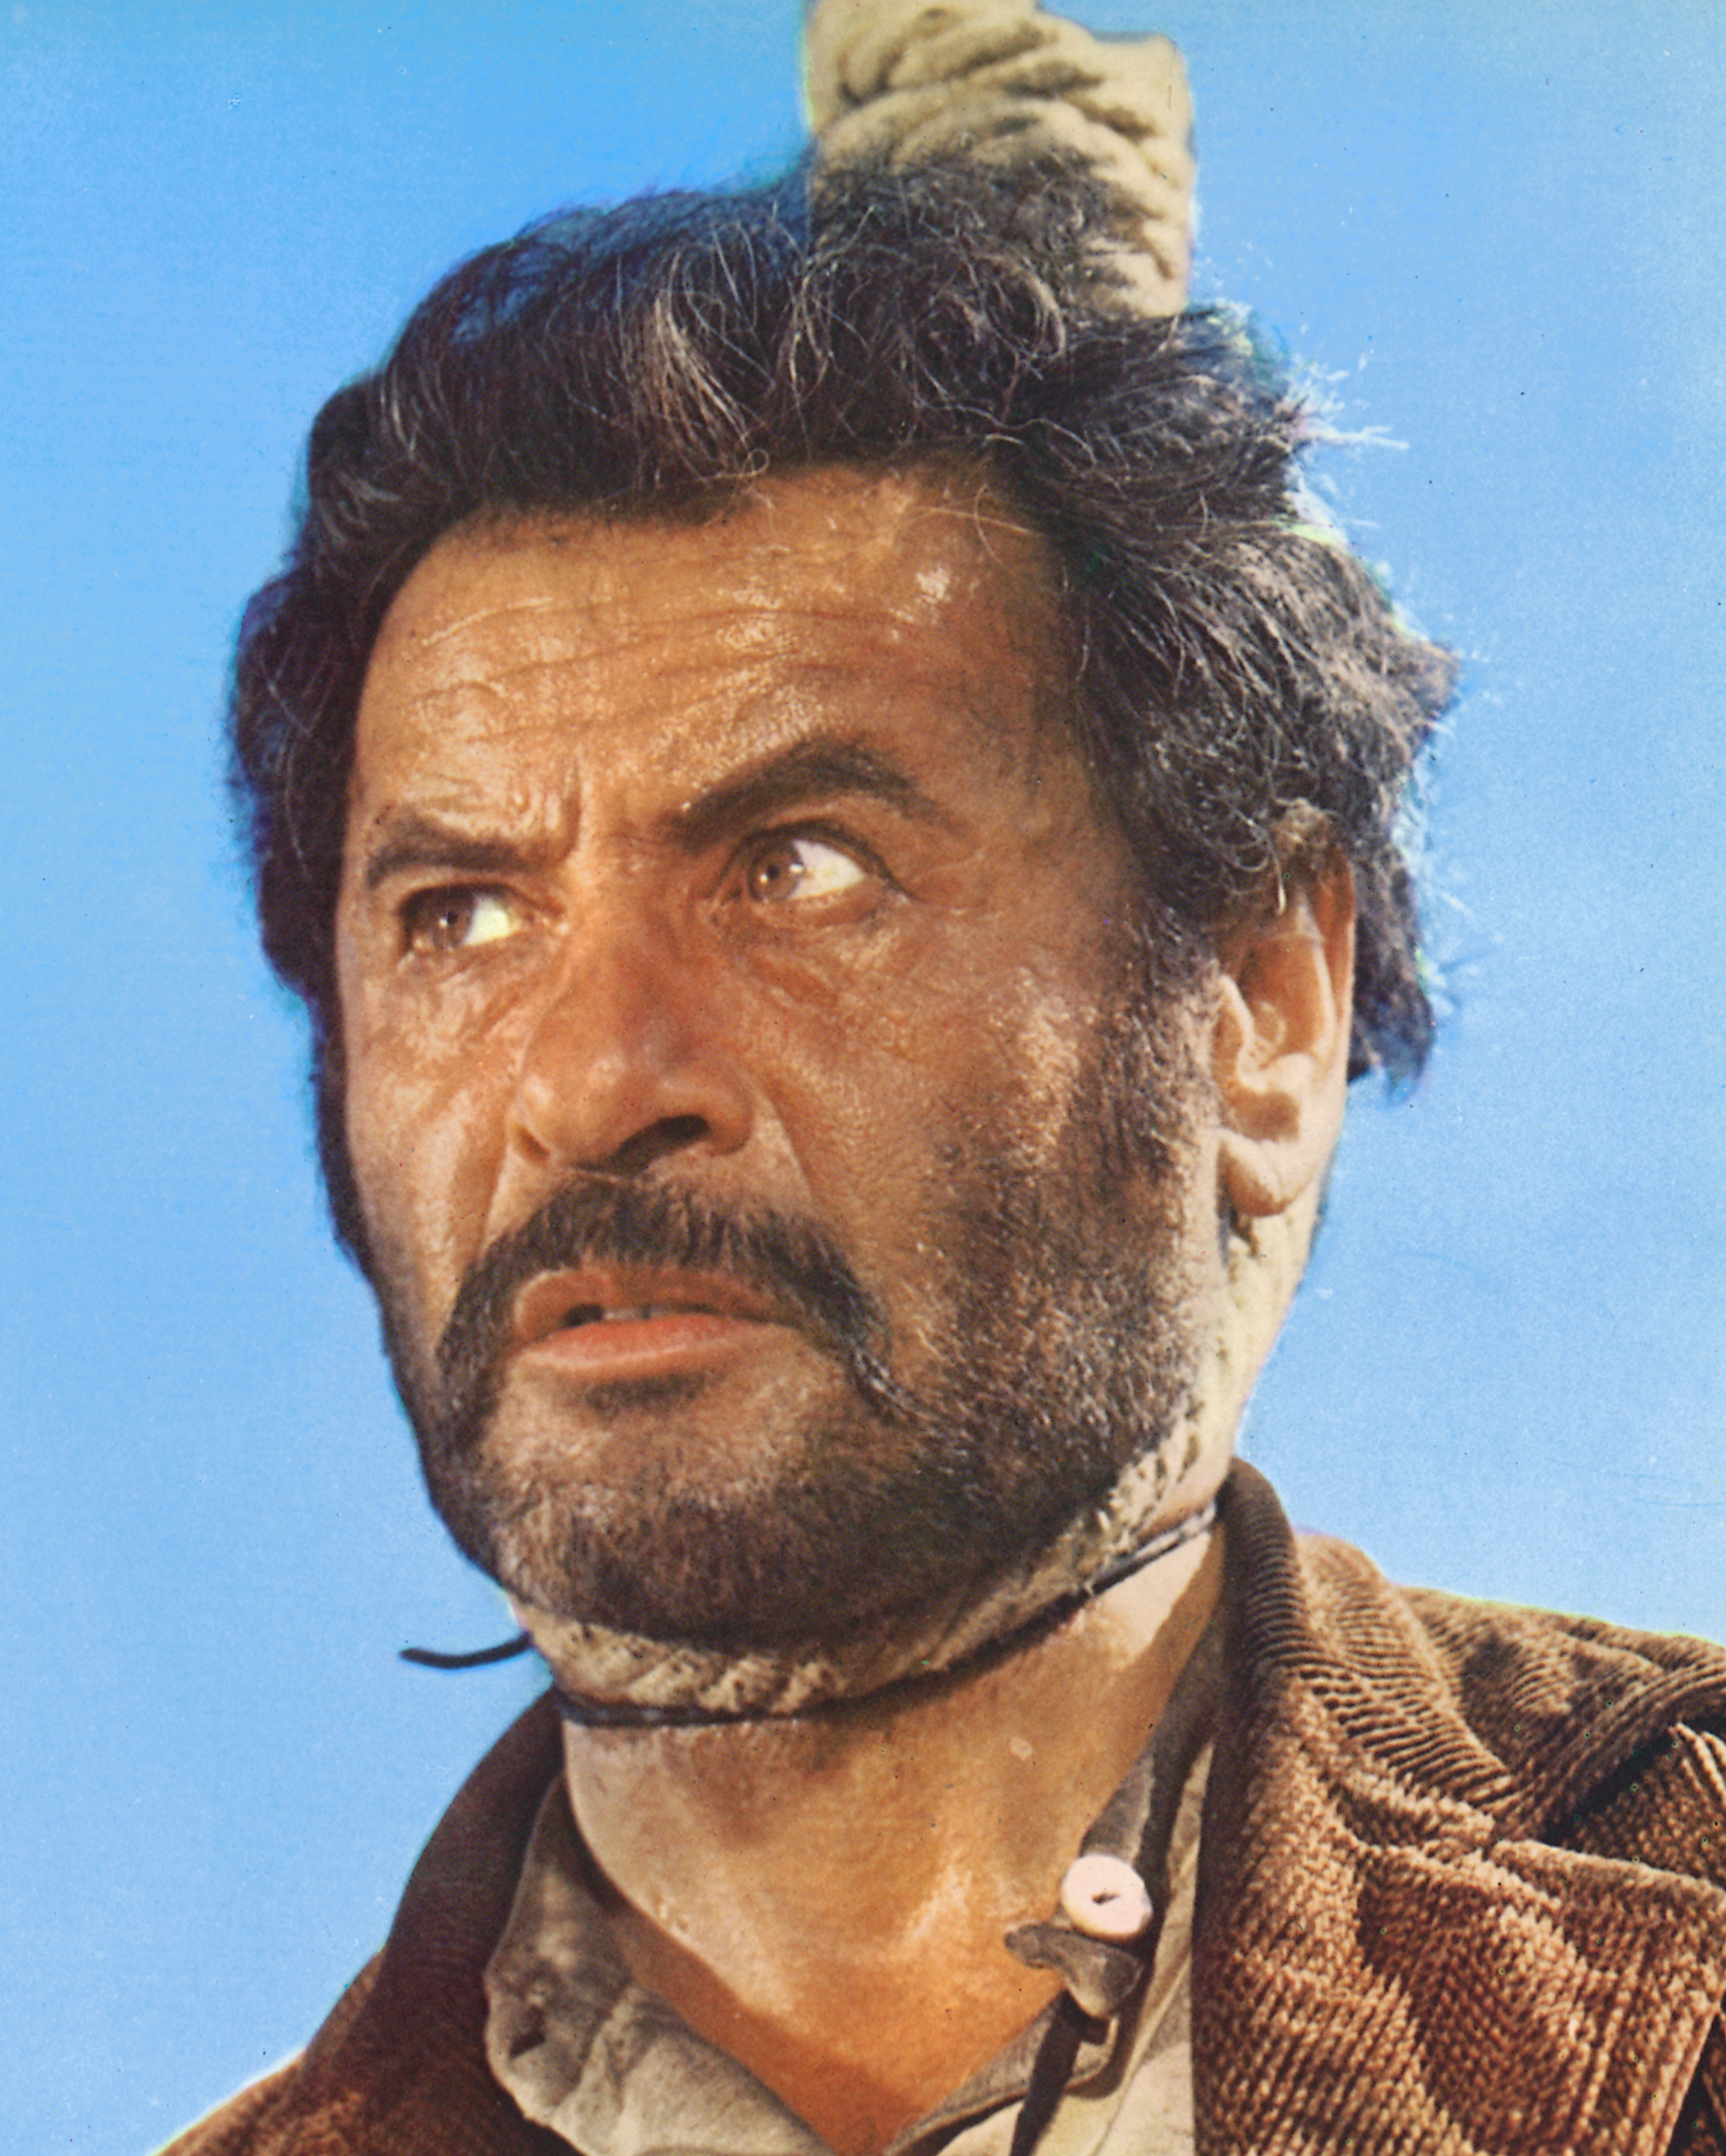 Eli Wallach as Tuco in Sergio Leone's 1966 film, 'The Good, the Bad and the Ugly.'